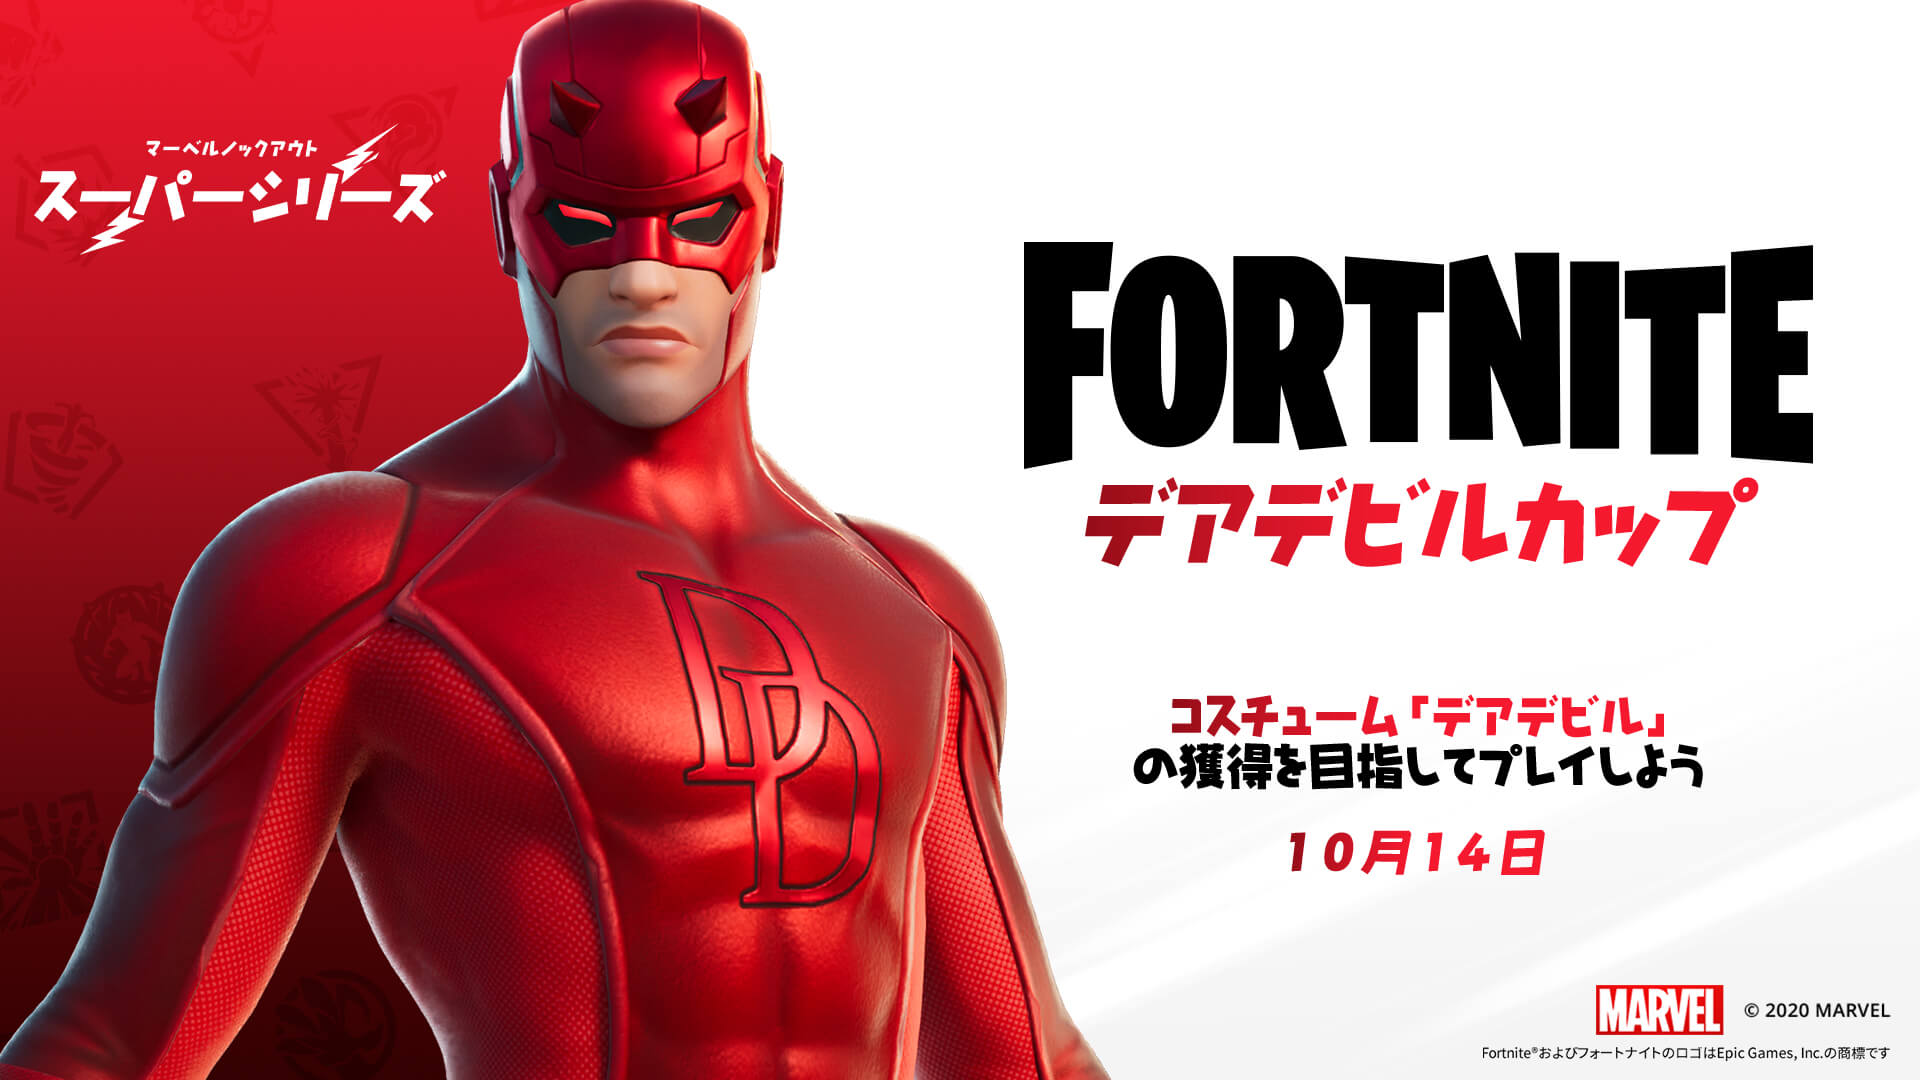 JP 14BR Competitive MarvelSuperSeries DaredevilCup Social